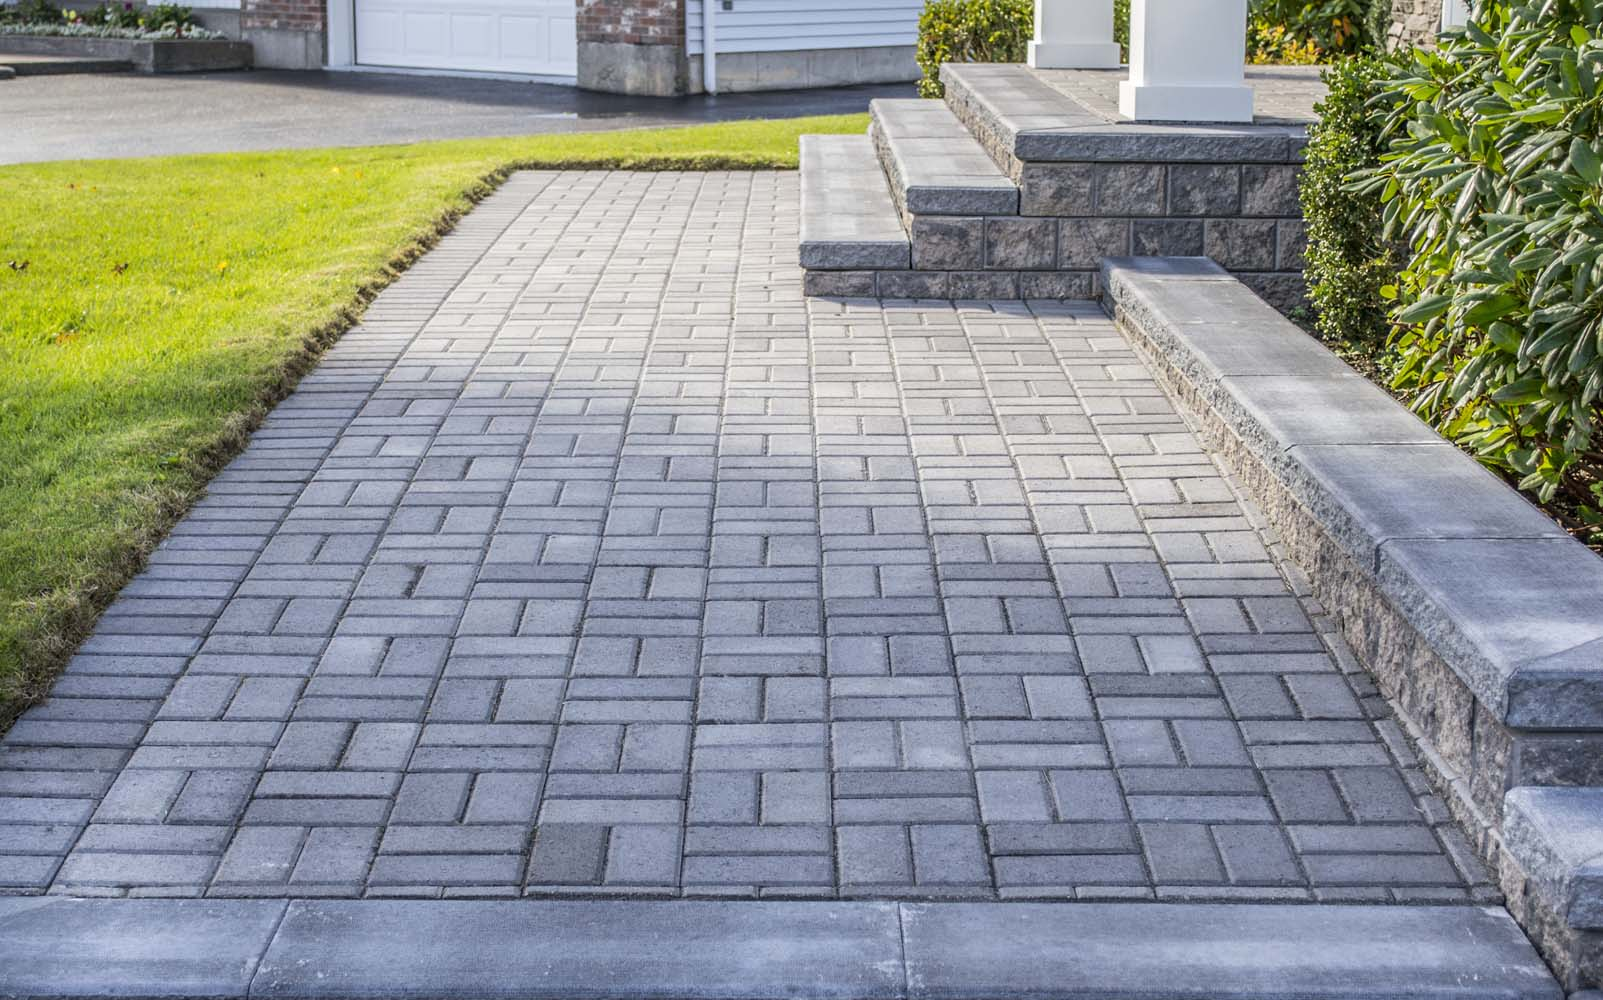 Paving Stones - Holland project 8